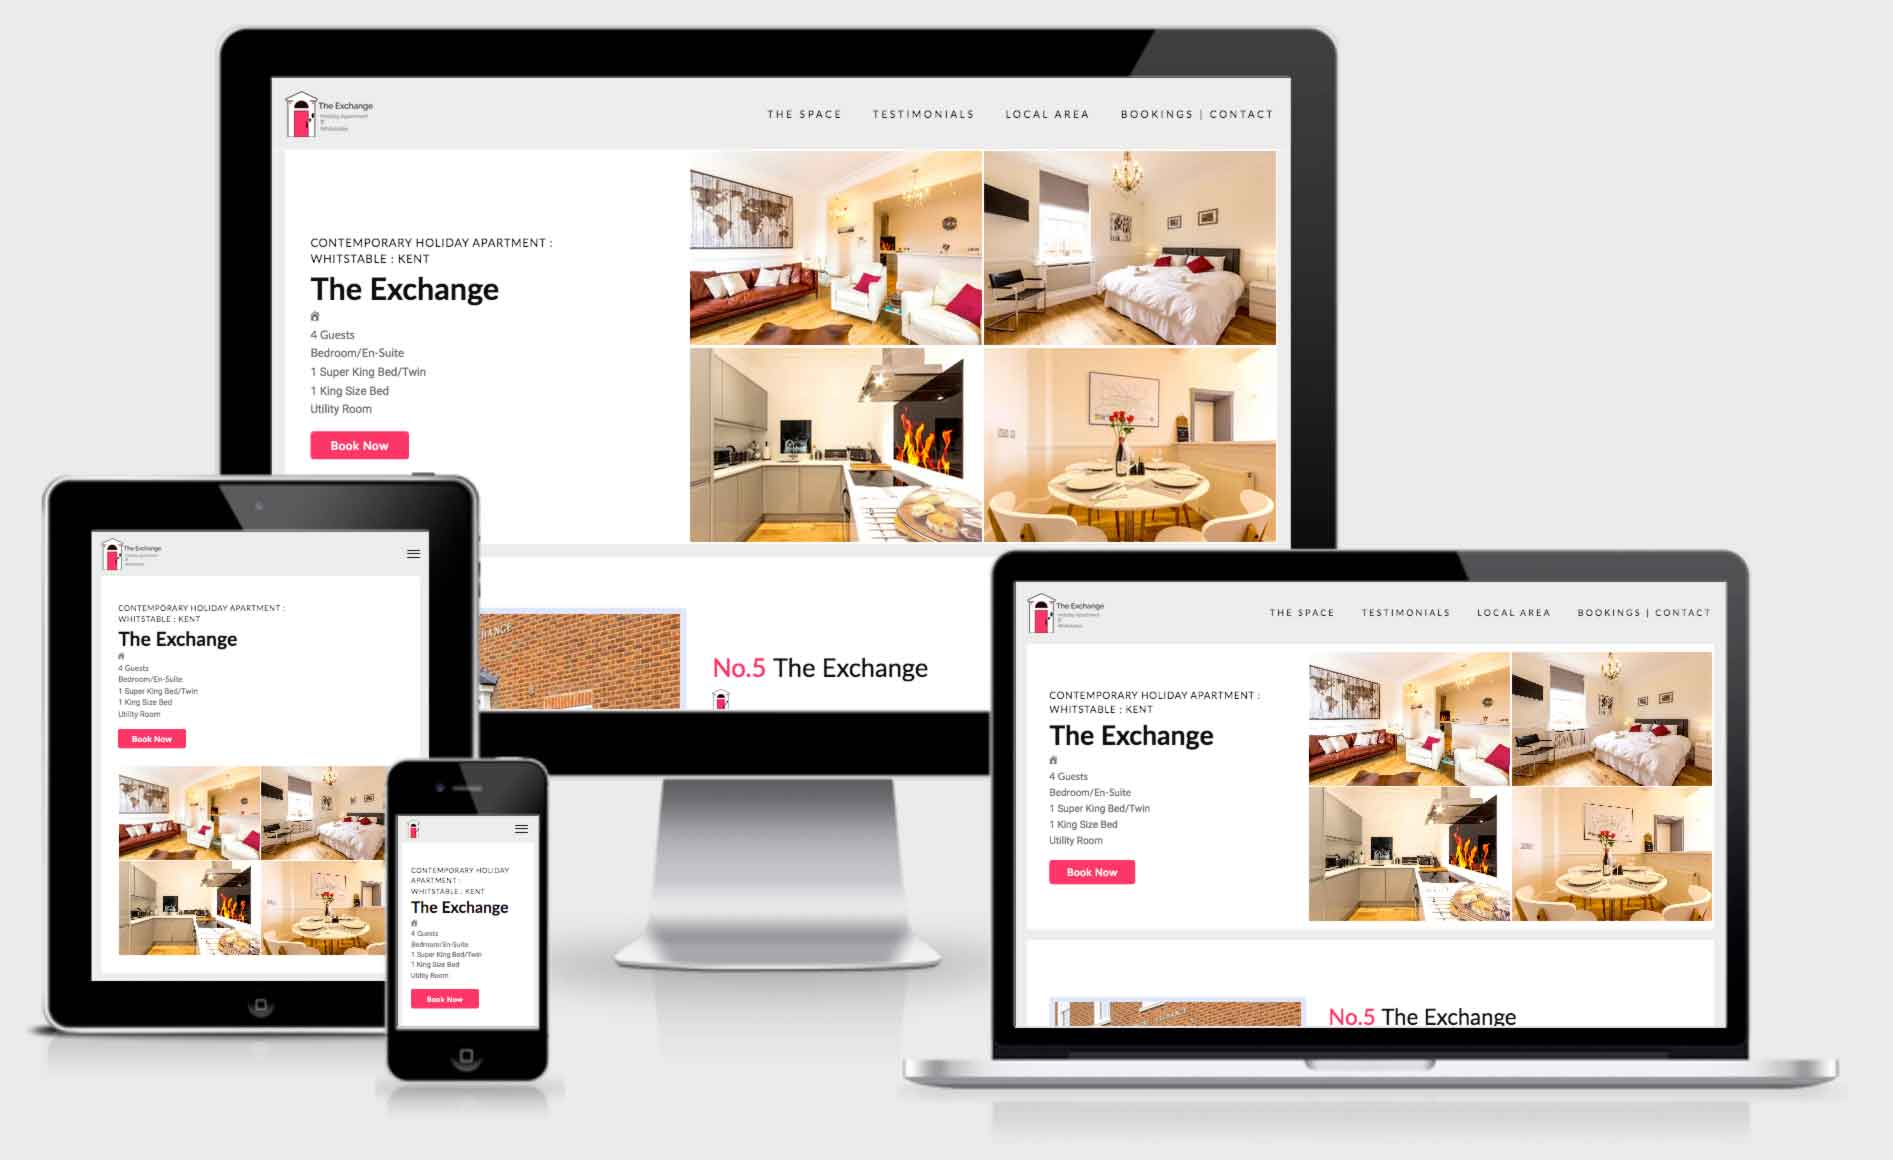 the-exchange-holiday-apartment-mpower-webdesign-template